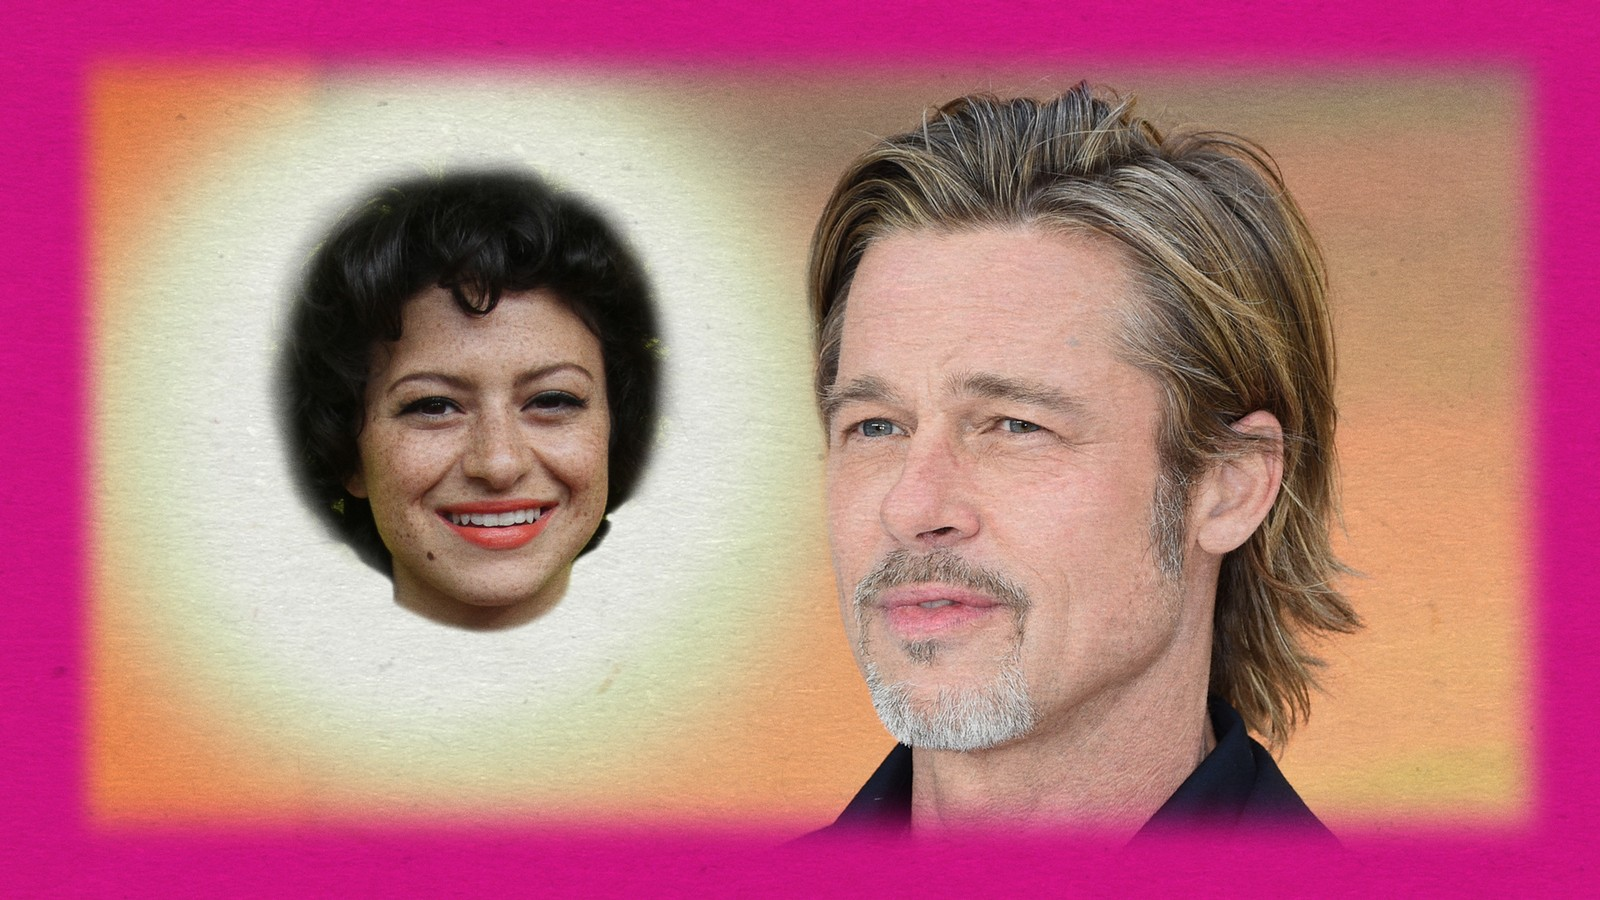 Brad Pitt and Alia Shawkat Are Just Friends, OK?